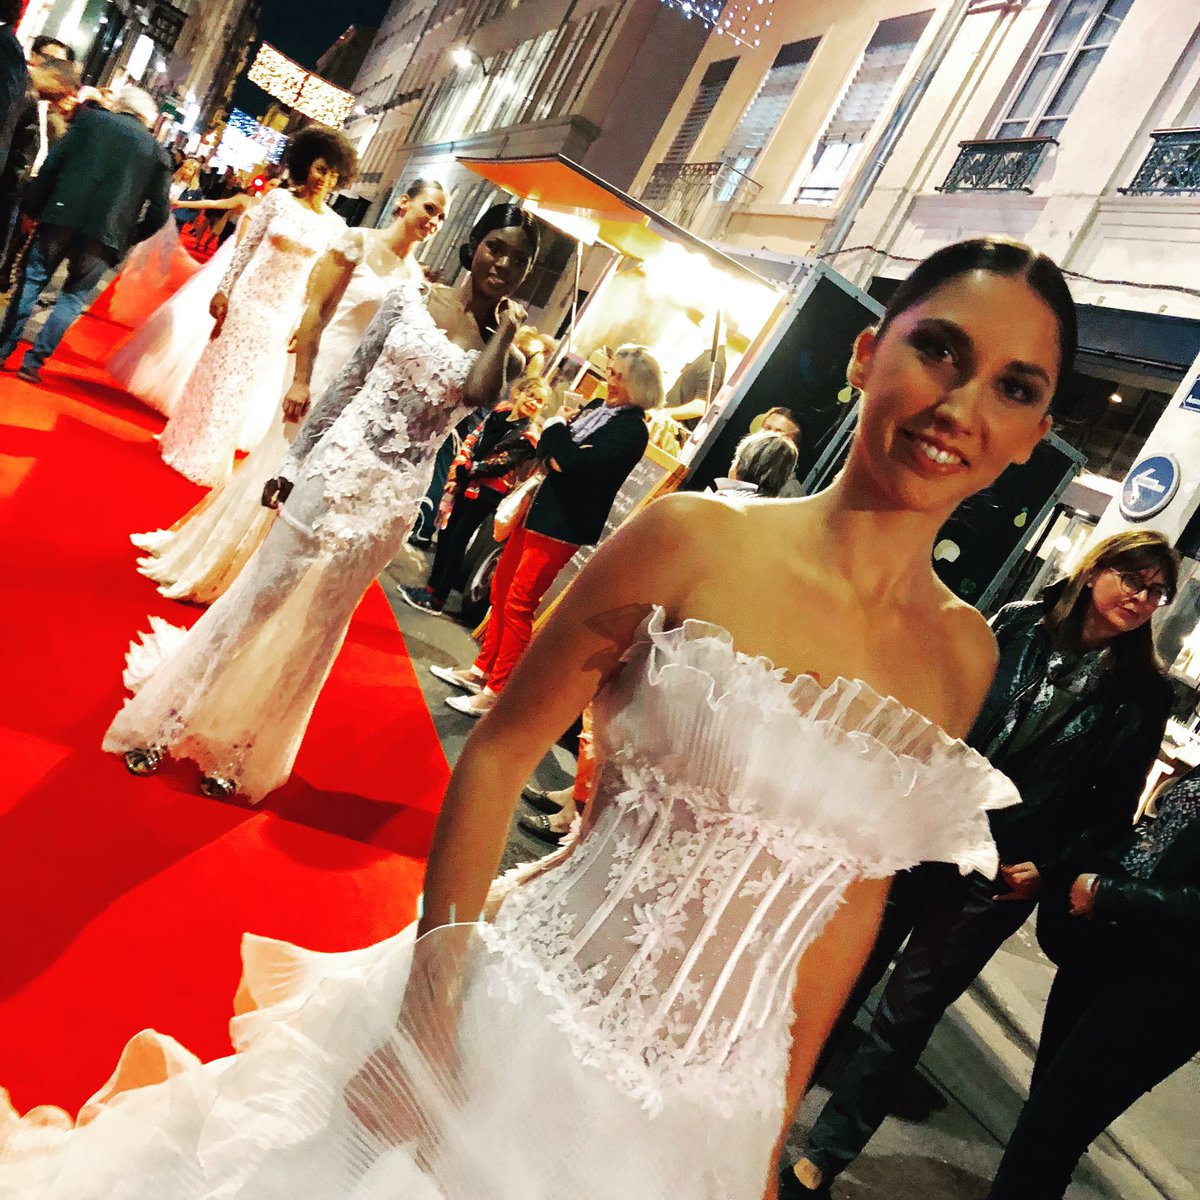 Pascale Savey On Twitter Soiree Tapis Rouge Rue Auguste Comte